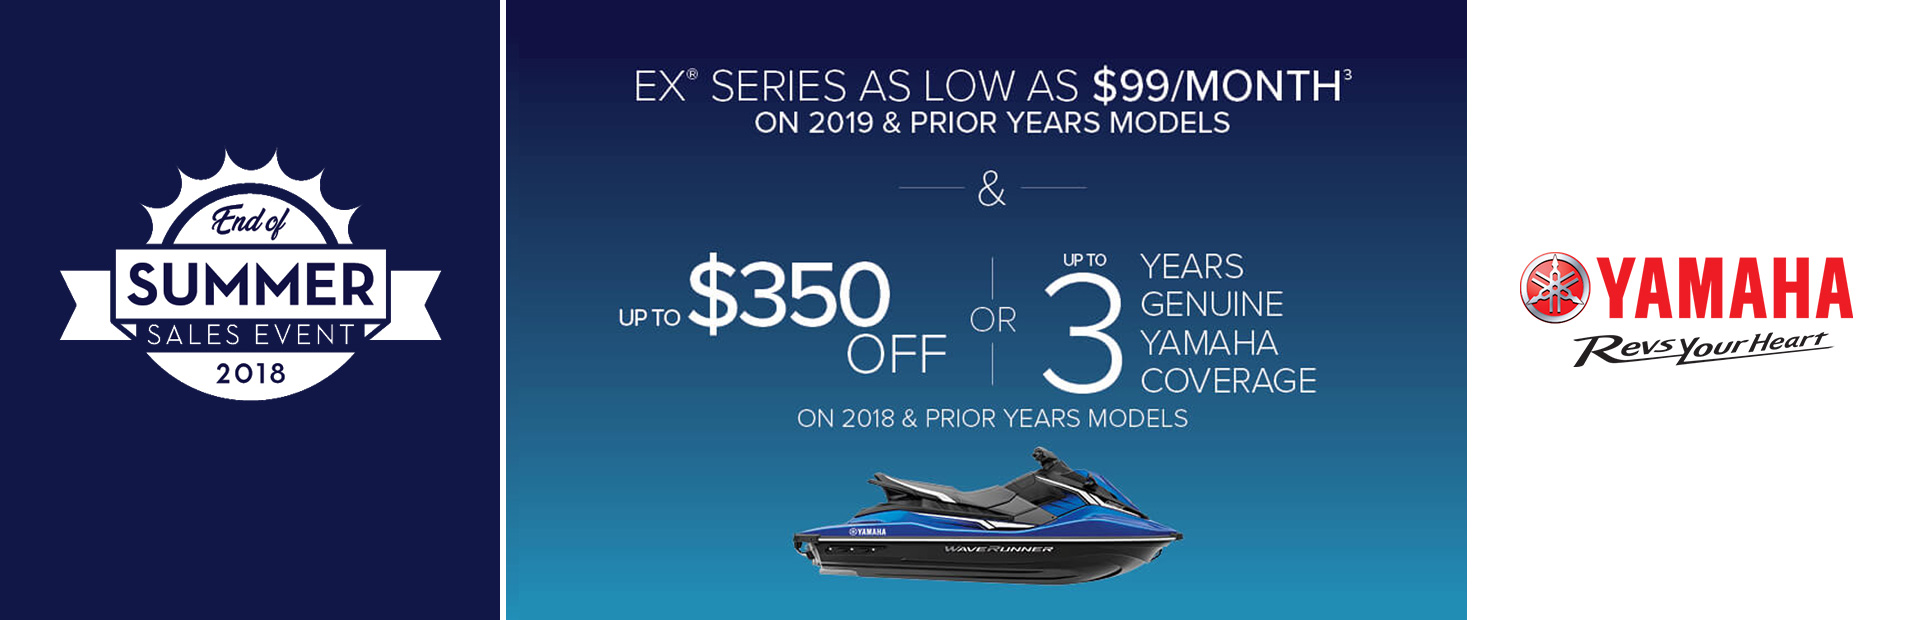 Yamaha: EX® Series As Low As $99/Month On 2019 & Prior